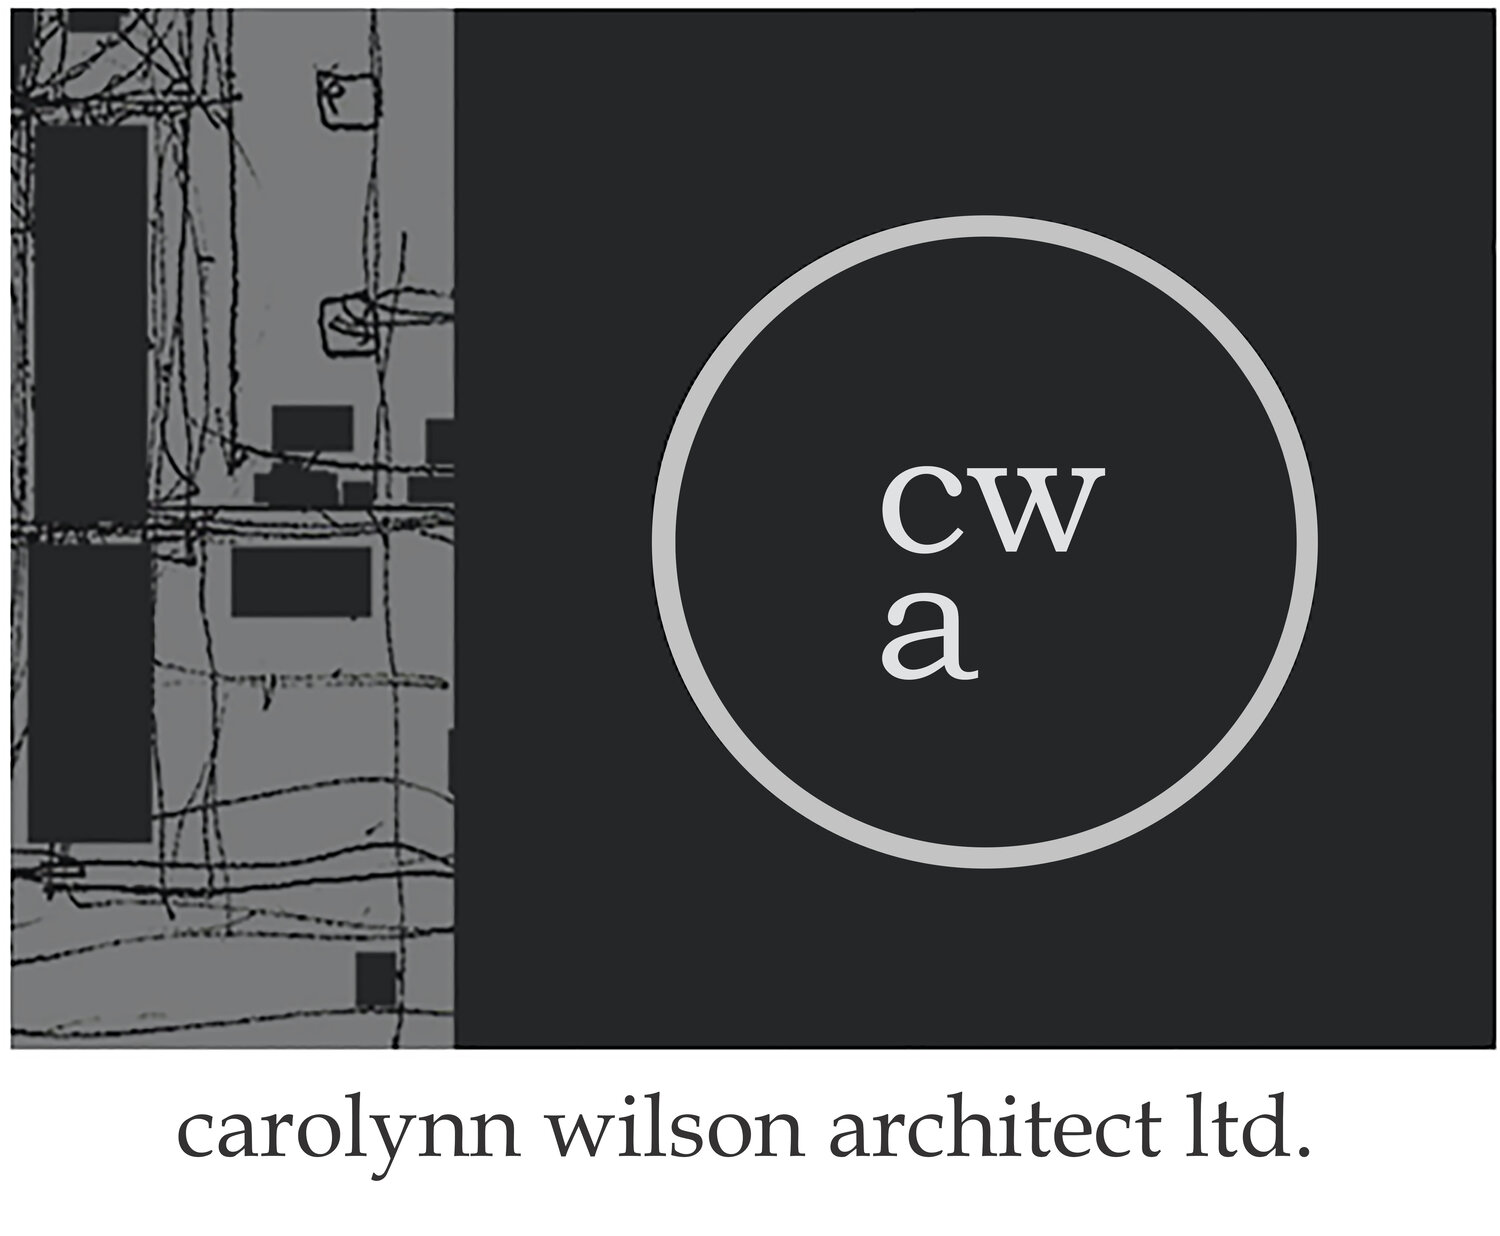 Carolynn Wilson Architect Ltd logo